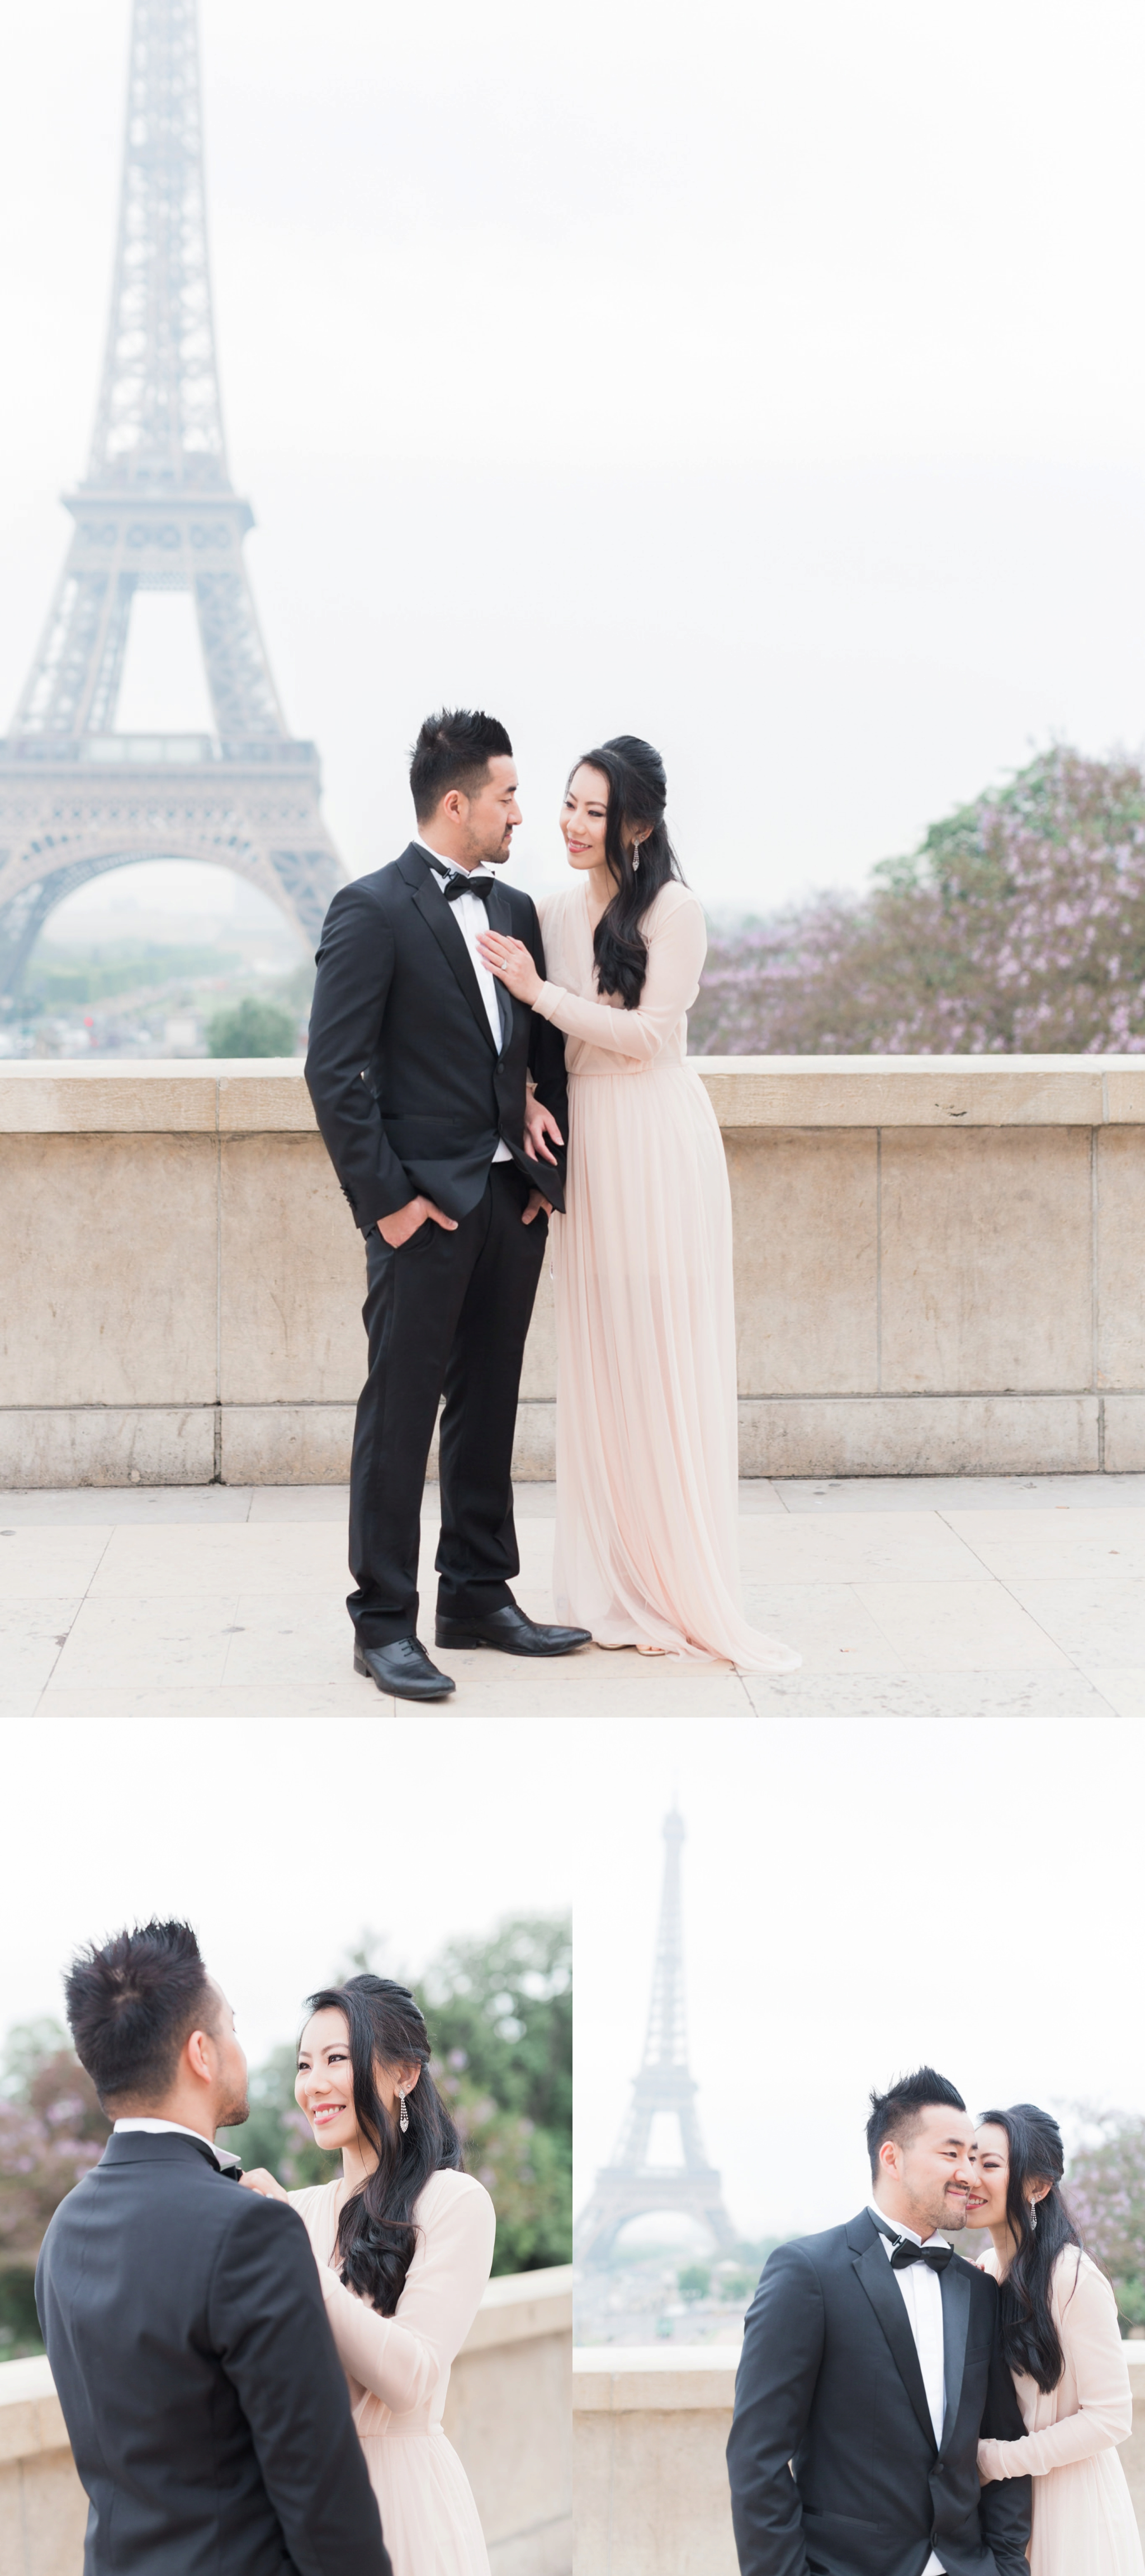 Suzanne_li_photography_paris_engagement_shoot_0030.jpg